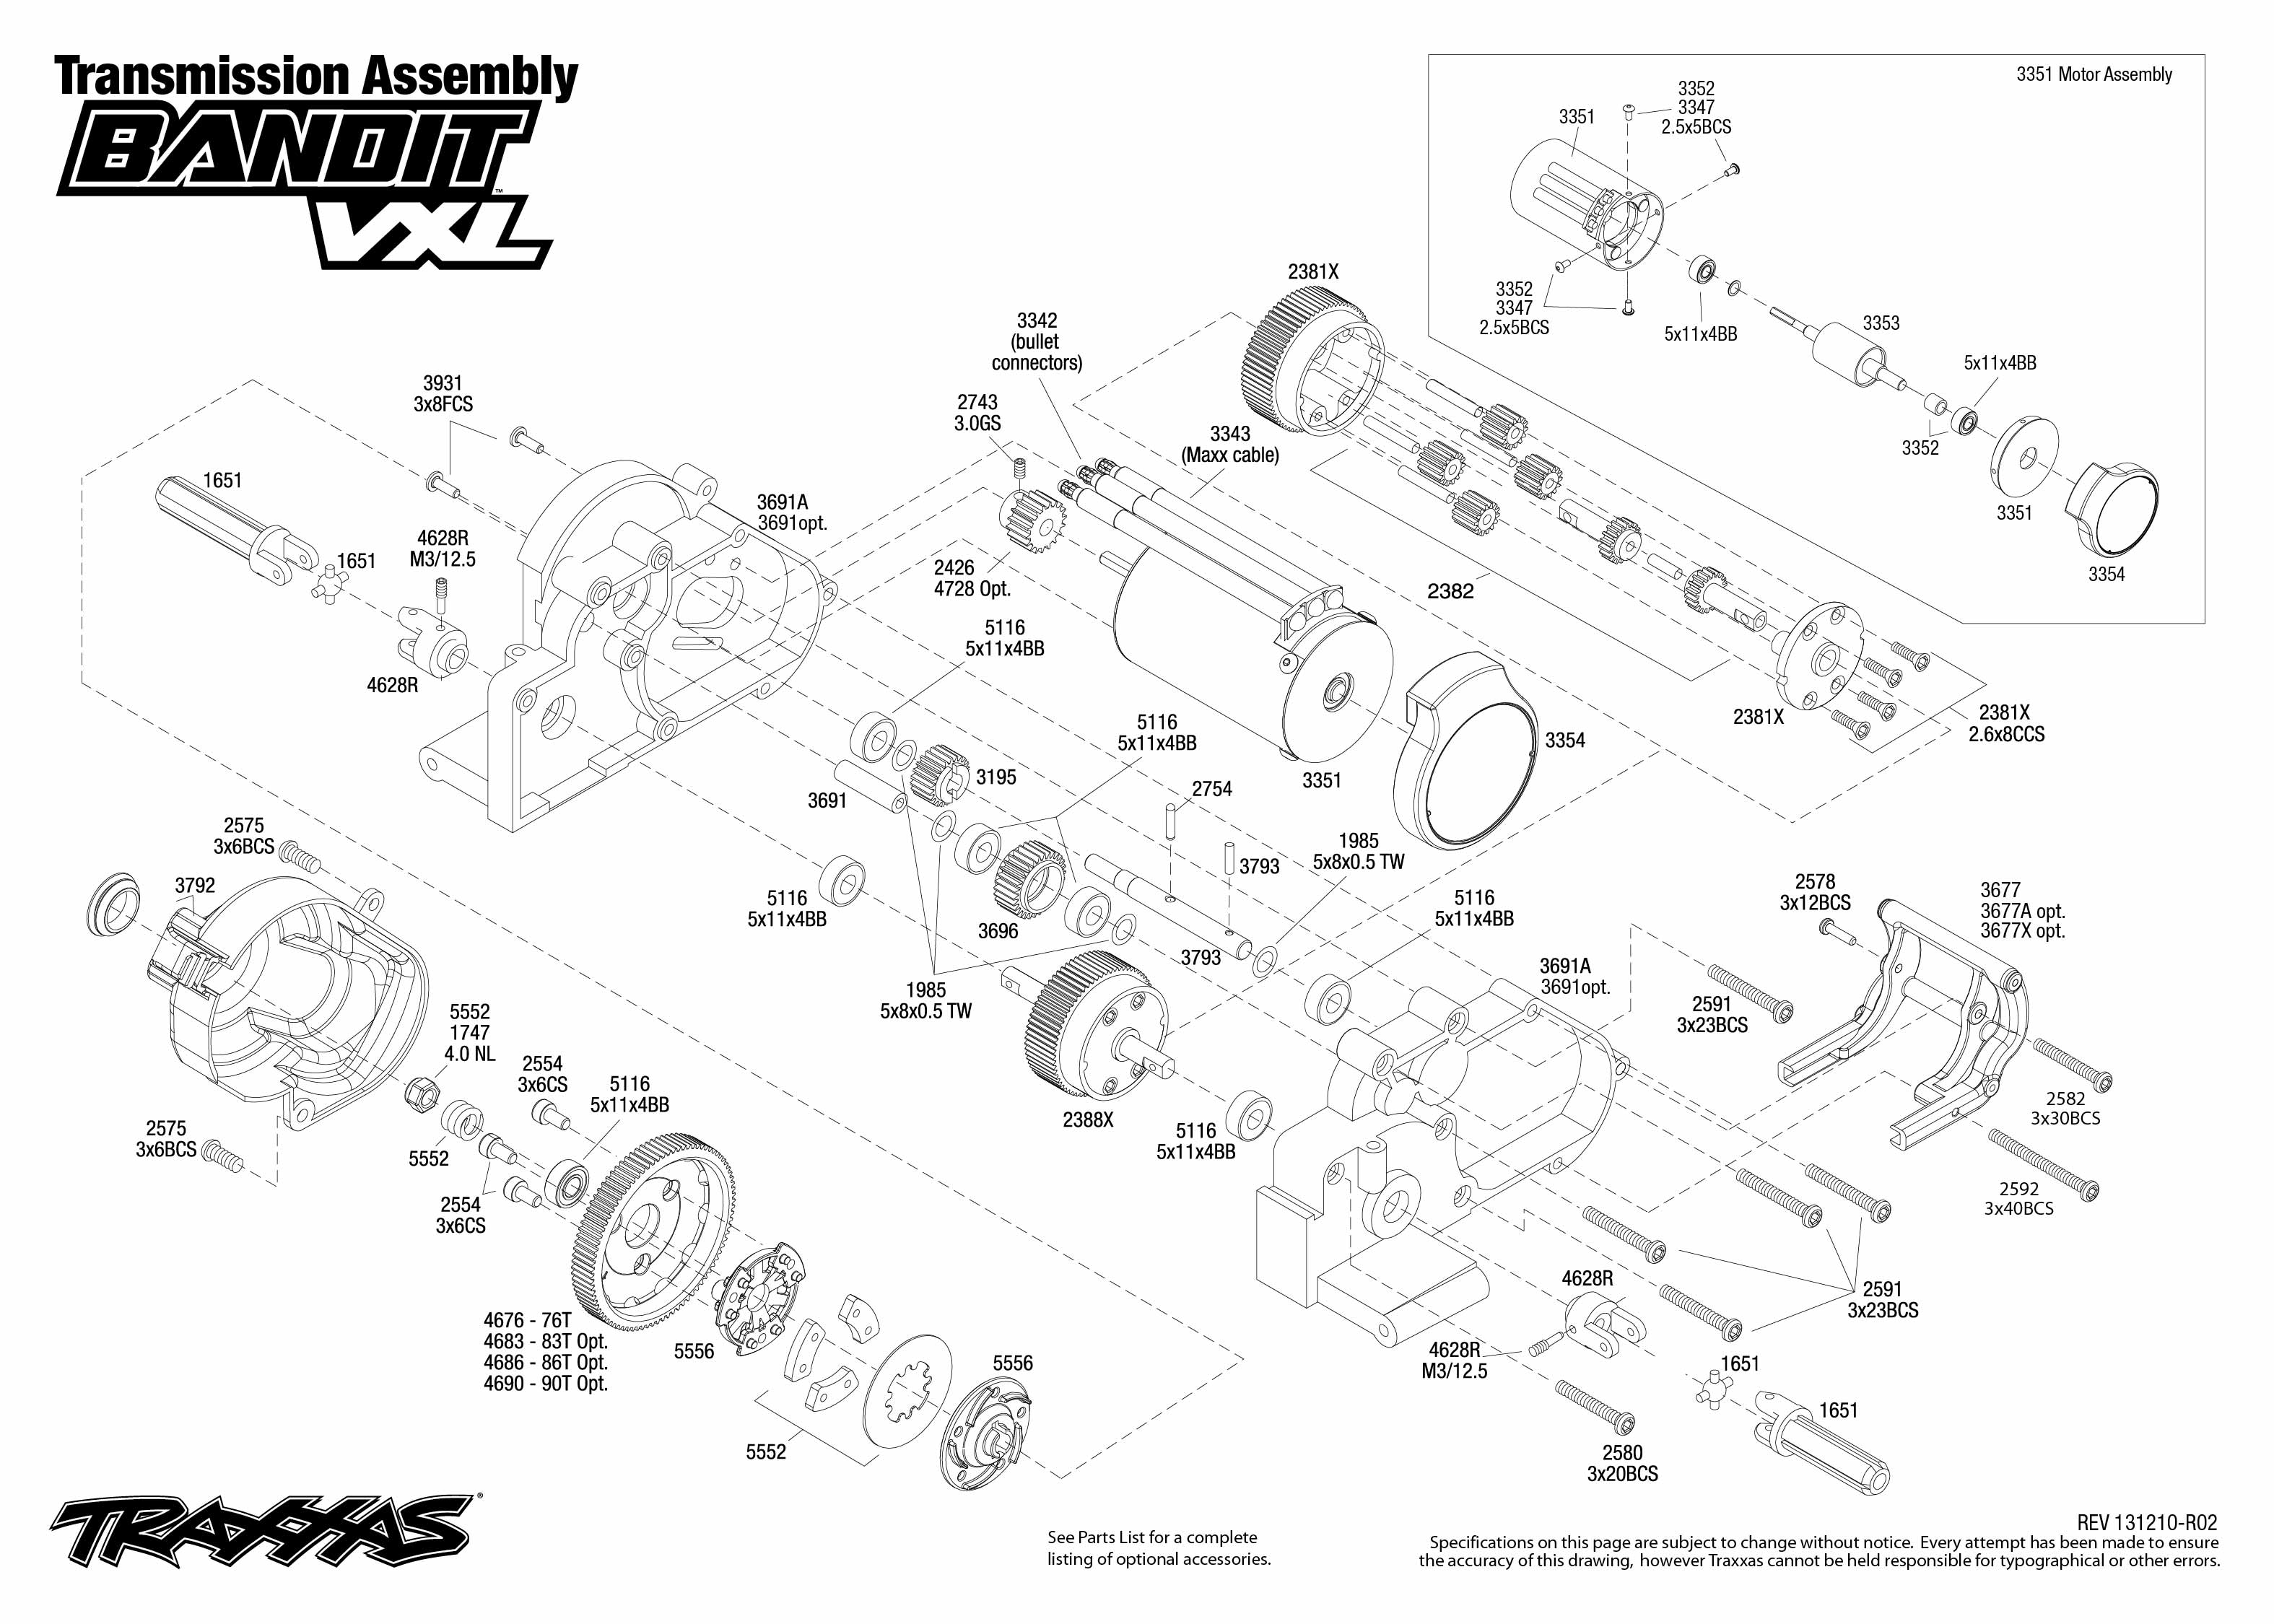 2407 transmission exploded view bandit vxl traxxas rh traxxas com traxxas parts diagram rustler traxxas parts diagram rustler